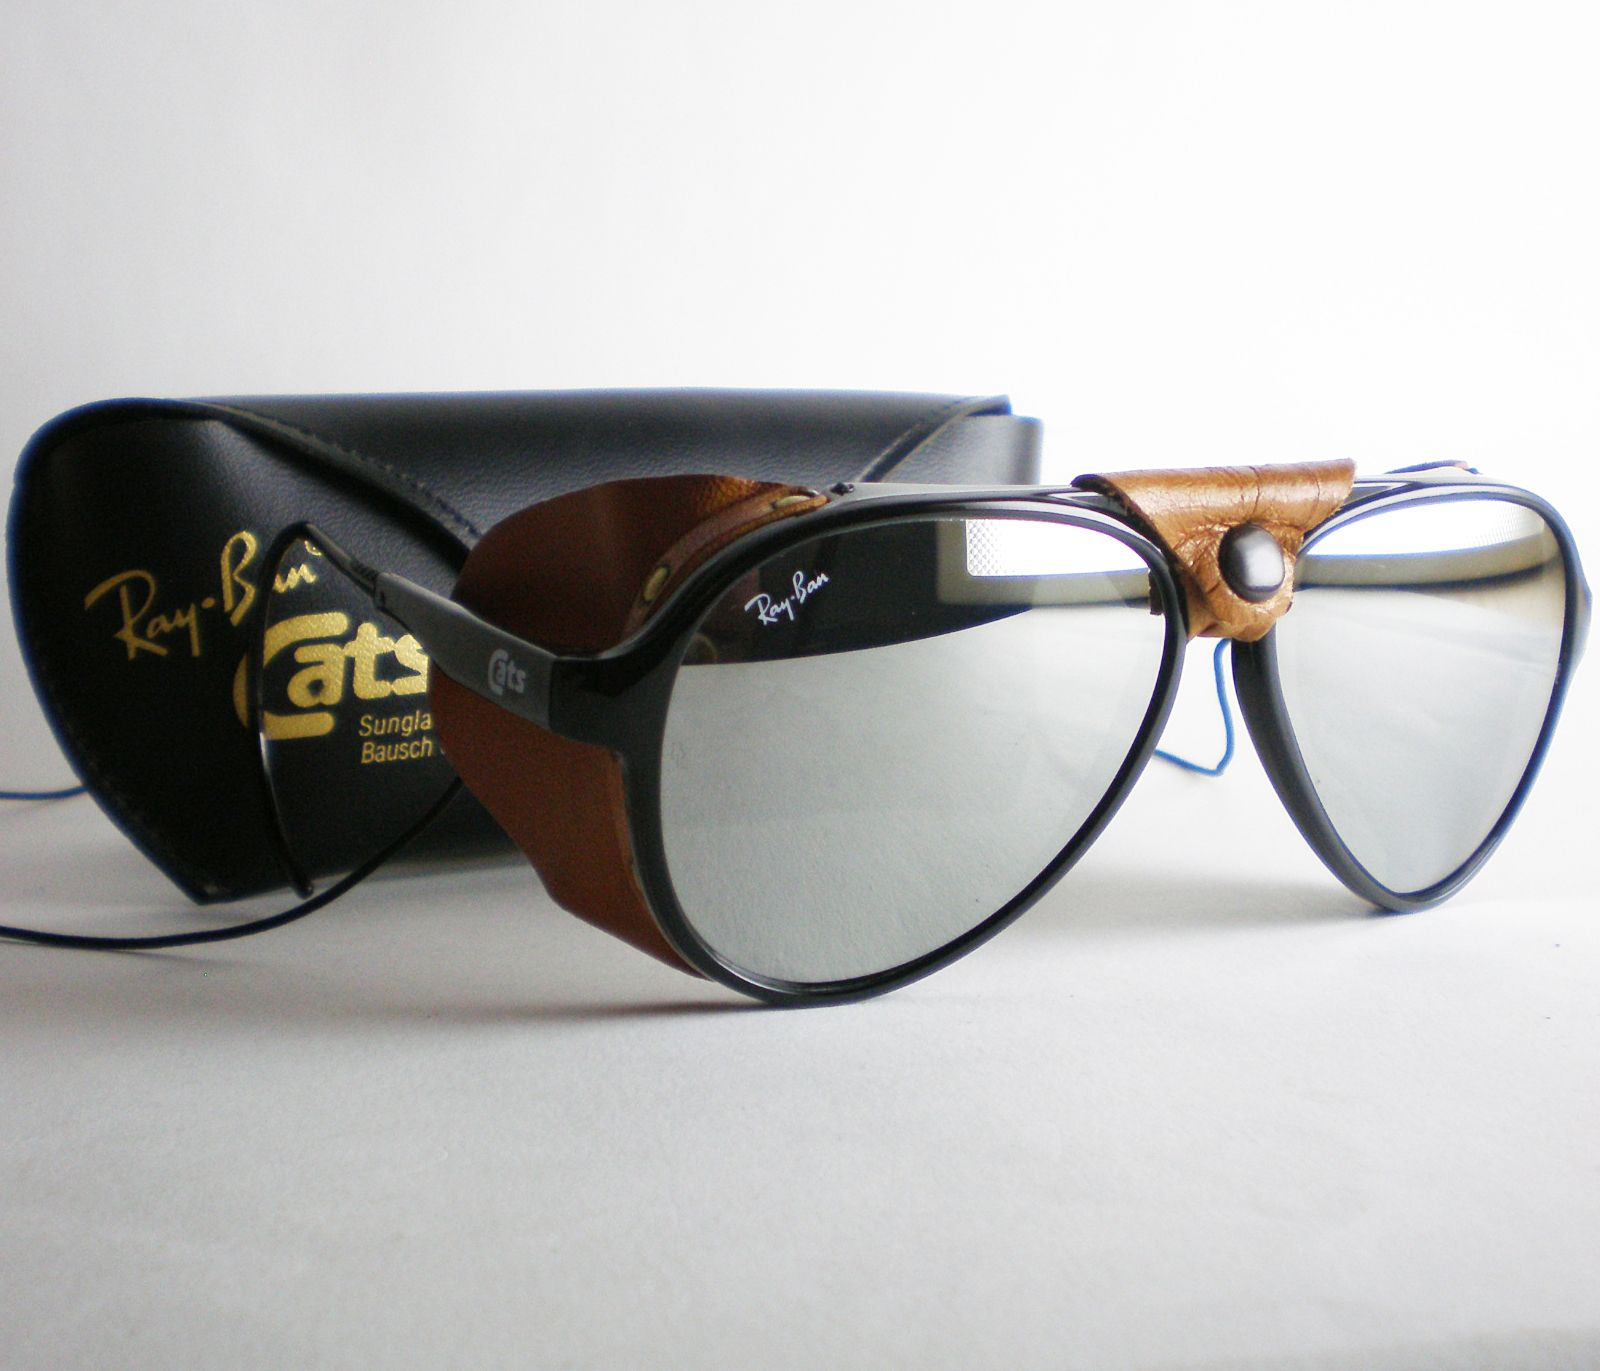 vintage ray ban aviator sunglasses value  vintage ray ban cats 8000 mirrored sunglasses aviator side shield leathers black